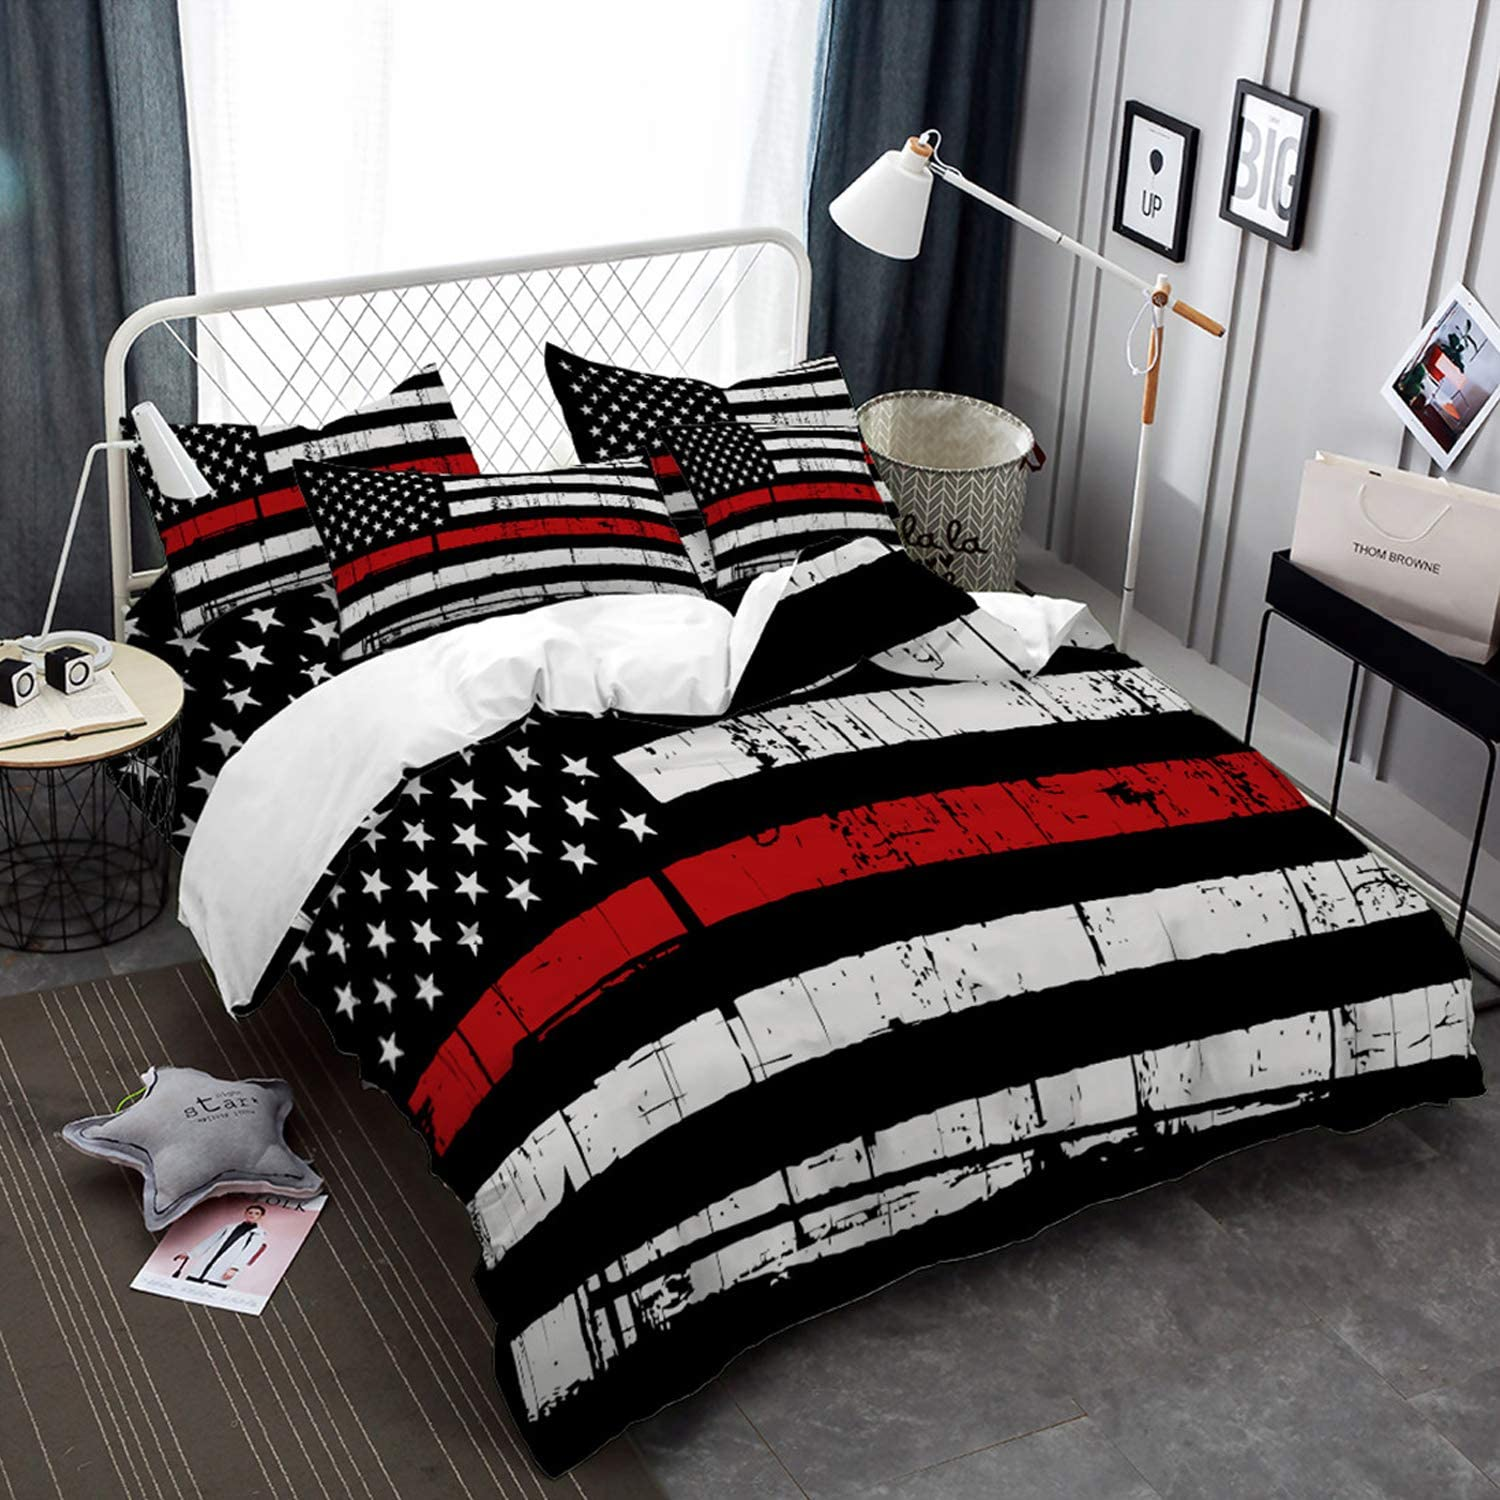 American Flag Duvet Cover Queen Size Independence Day Bedding Set Colorful Red Black White Stripe Quilt Cover 3D Printed Zipper Closure Bedding 3 Piece Bed Set with Pillowcase